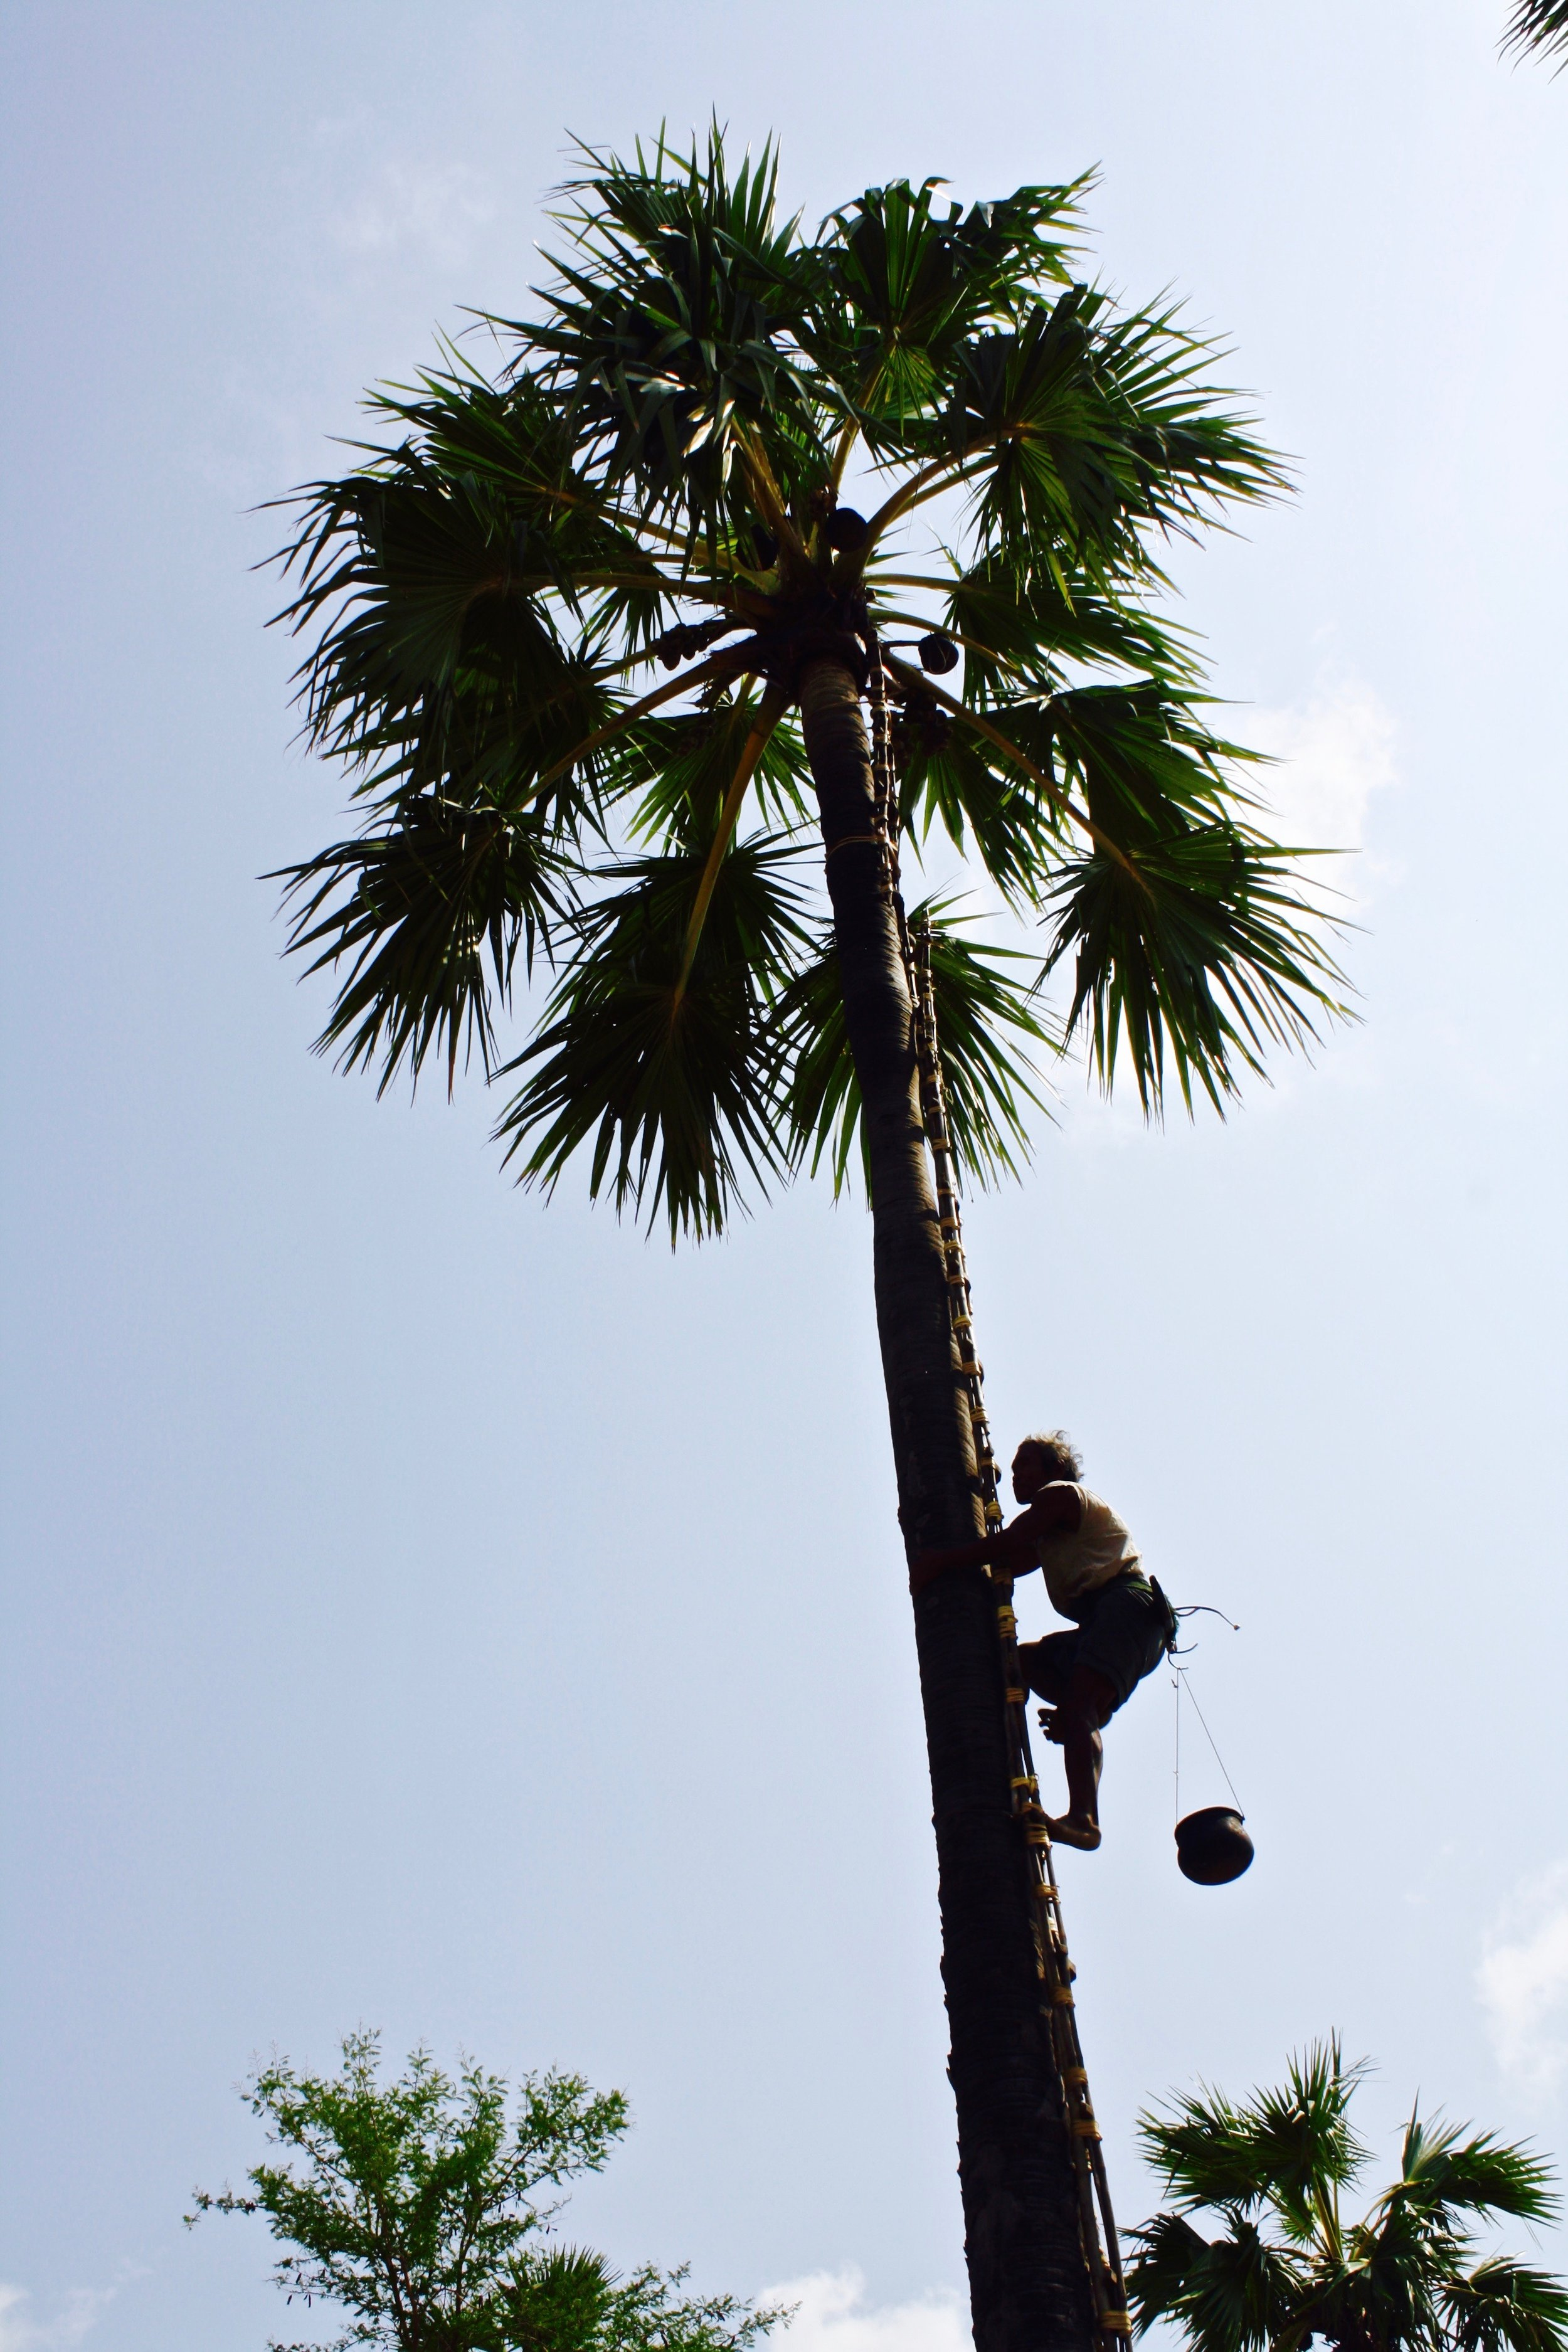 This 60 year-old toddy palm farmer easily scales up trees to get the toddy fruit.